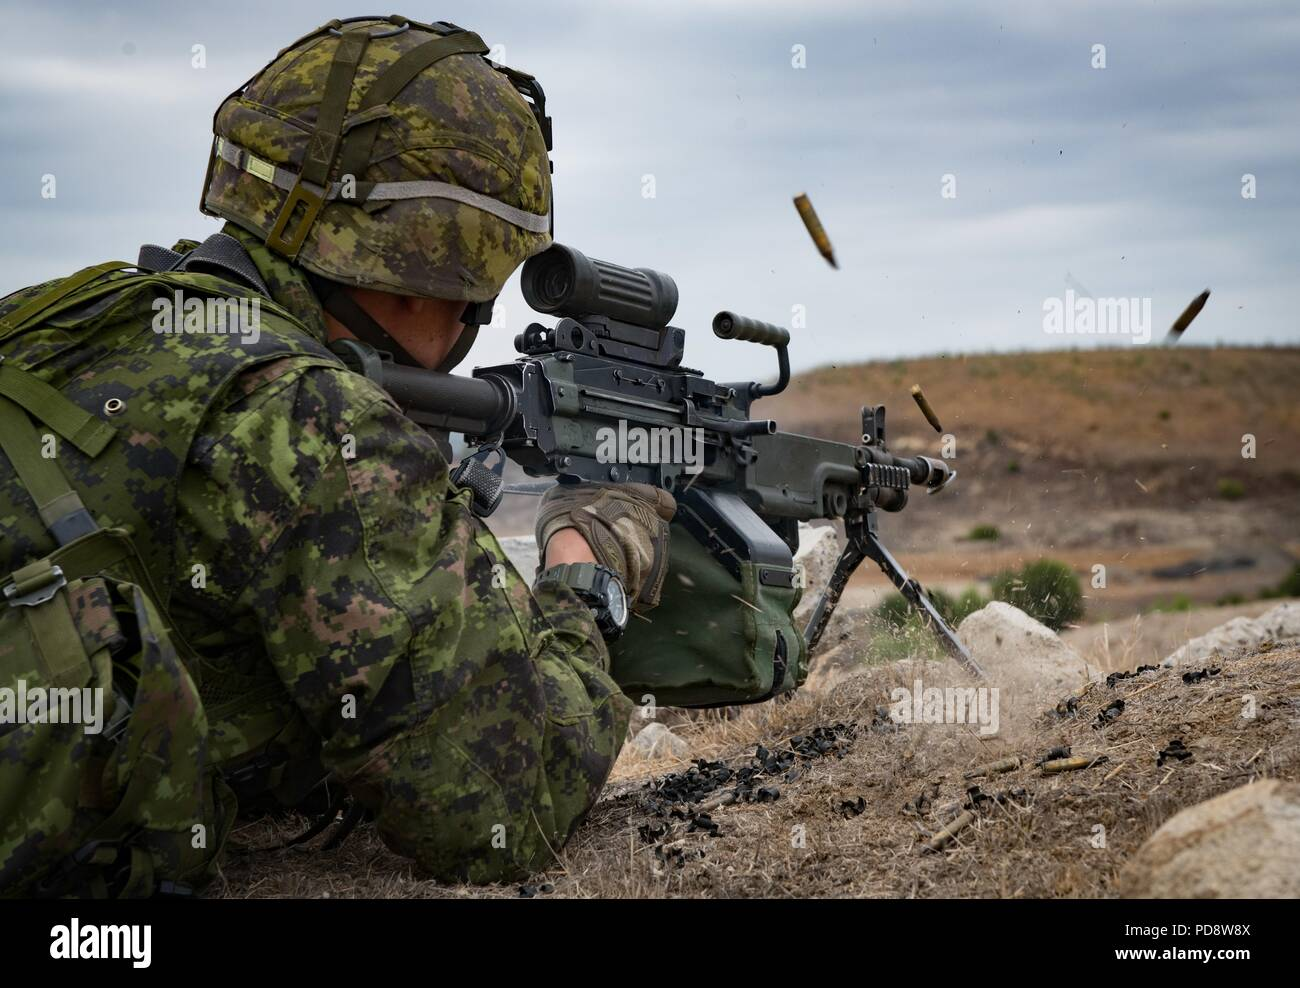 180703-O-N0842-3004 CAMP PENDLETON, Calif. (July 3, 2018) A member of the Canadian 2nd Battalion Royal 22e Regiment engages a target with his C9A2 Light Machine Gun in Combat Town Kilo-2 during the biennial Rim of the Pacific (RIMPAC) exercise on Marine Corps Base Camp Pendleton, July 3, July 3, 2018. Twenty-five nations, 46 ships, five submarines, about 200 aircraft, and 25, 000 personnel are participating in RIMPAC from June 27 to Aug. 2 in and around the Hawaiian Islands and Southern California. The world's largest international maritime exercise, RIMPAC provides a unique training opportuni - Stock Image